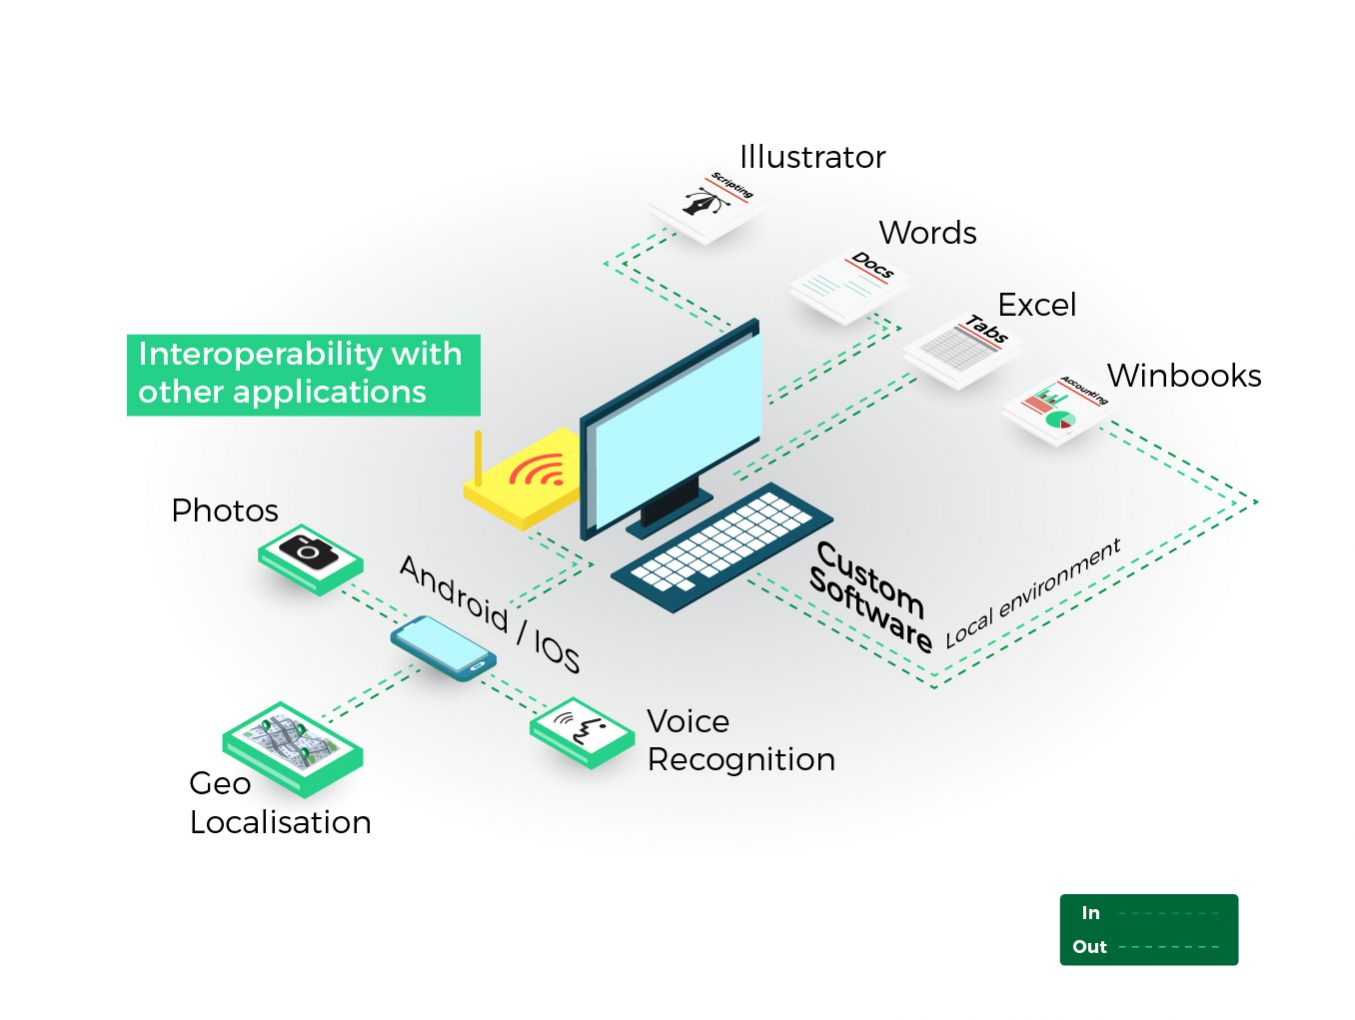 Interoperability with other applications